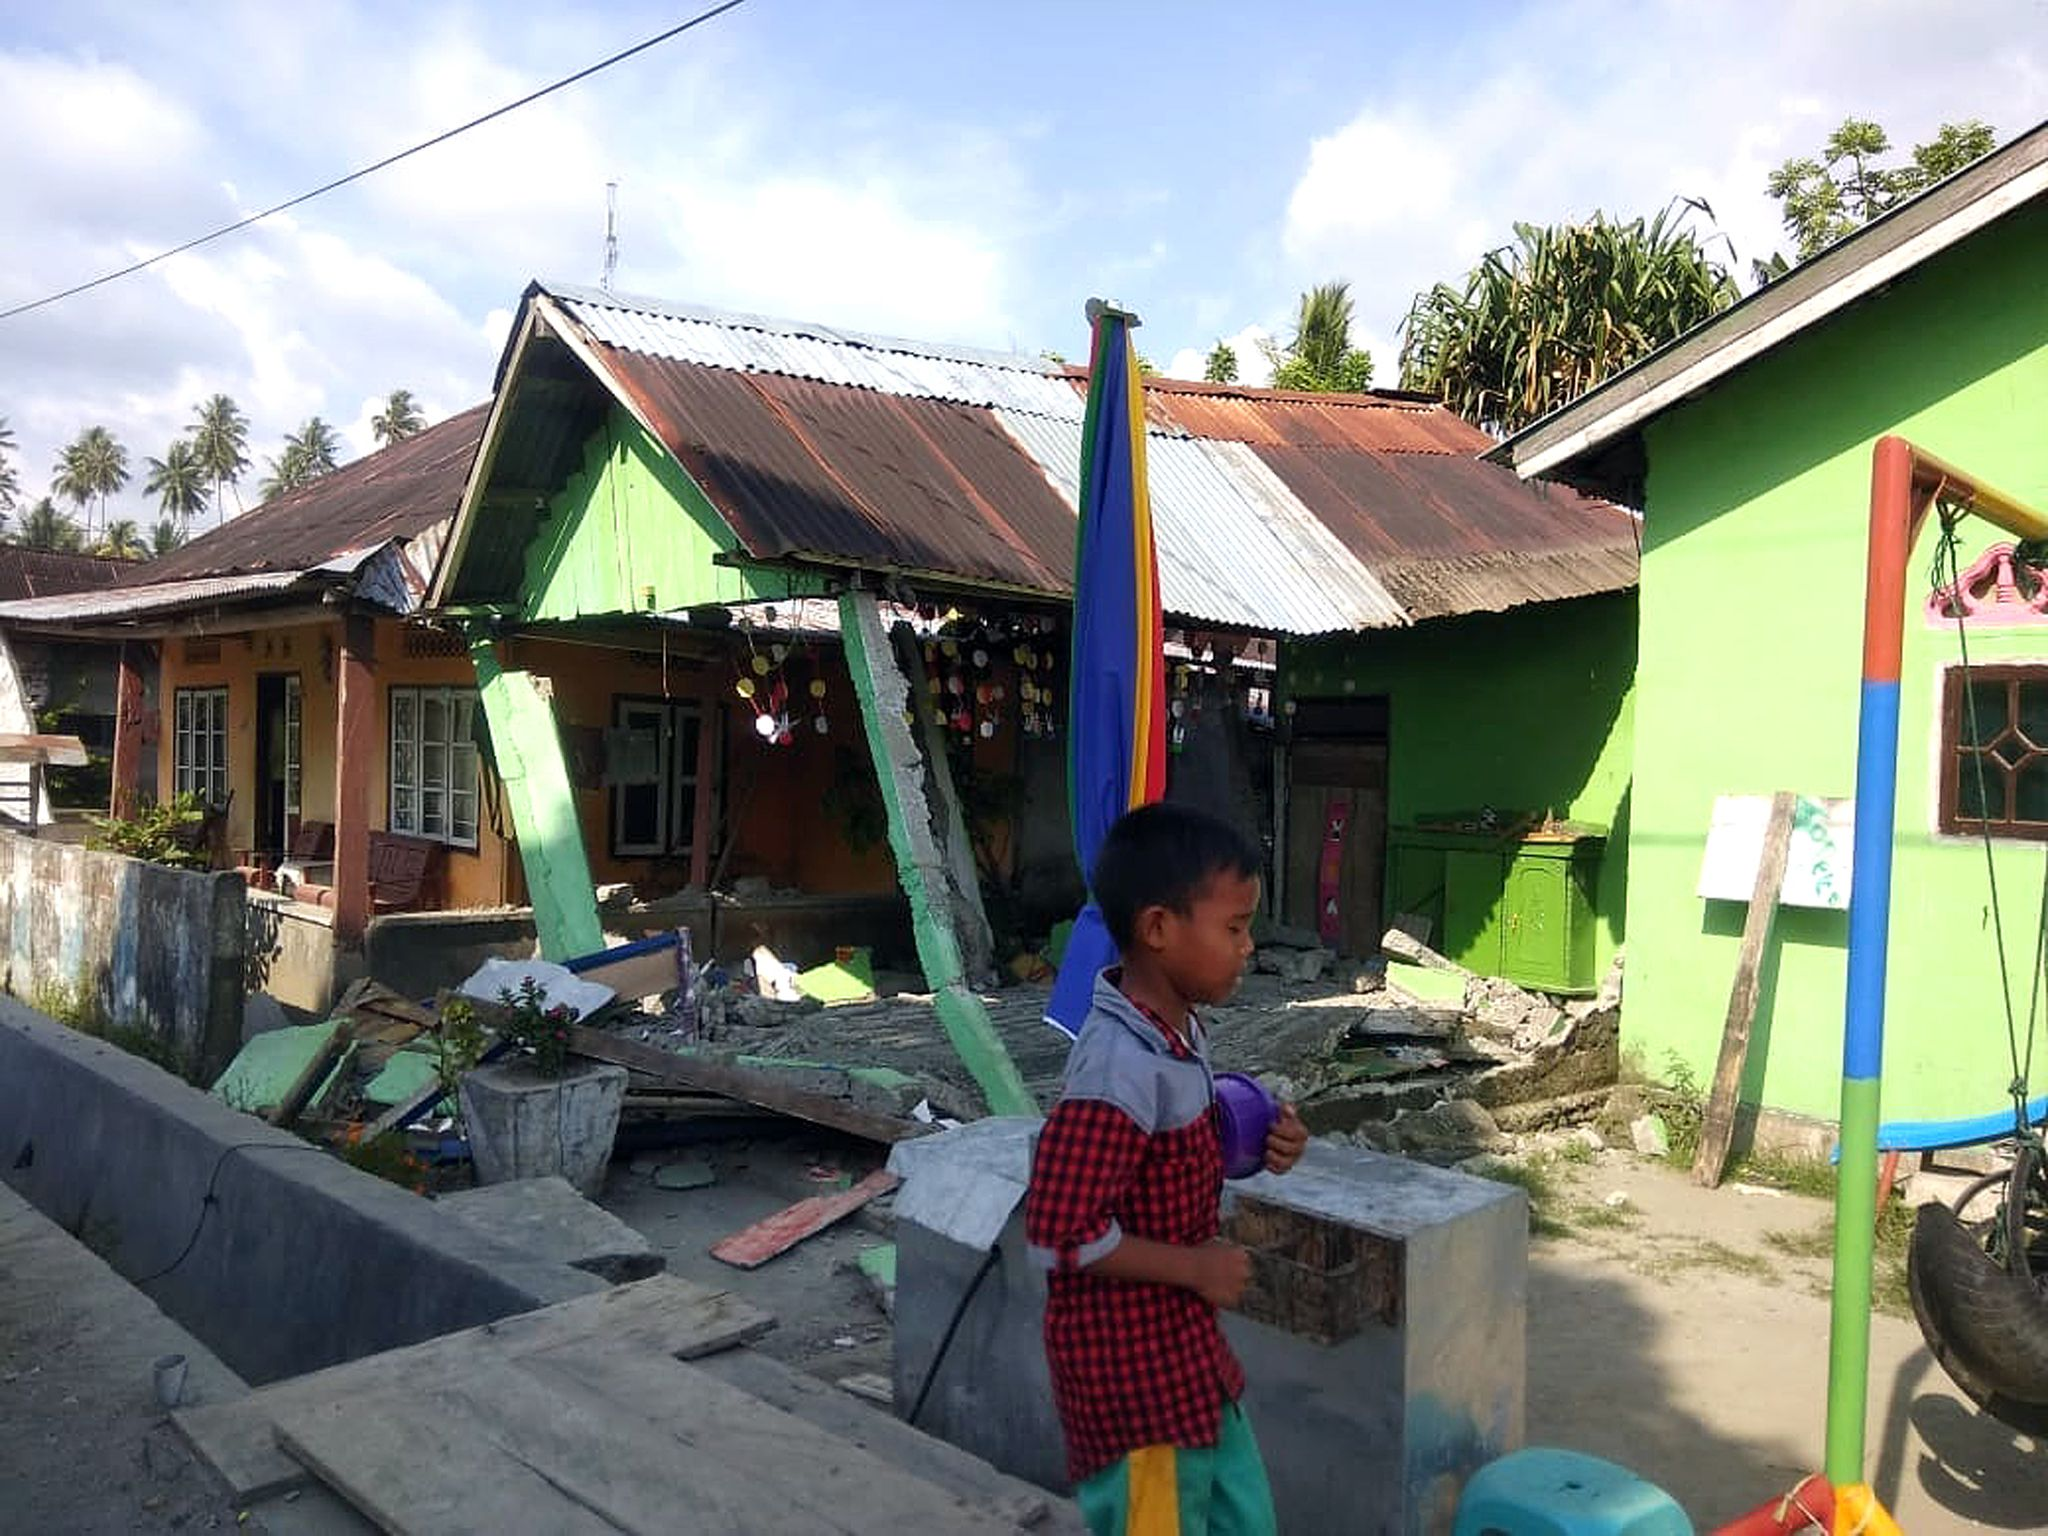 Scenes of devastation in Palu, Sulawesi, Indonesia, after the 7.5 magnitude earthquake and tsunami. Serve On volunteers have been on stand-by to help if required. Pictures issued by the local disaster management agency BNPB.